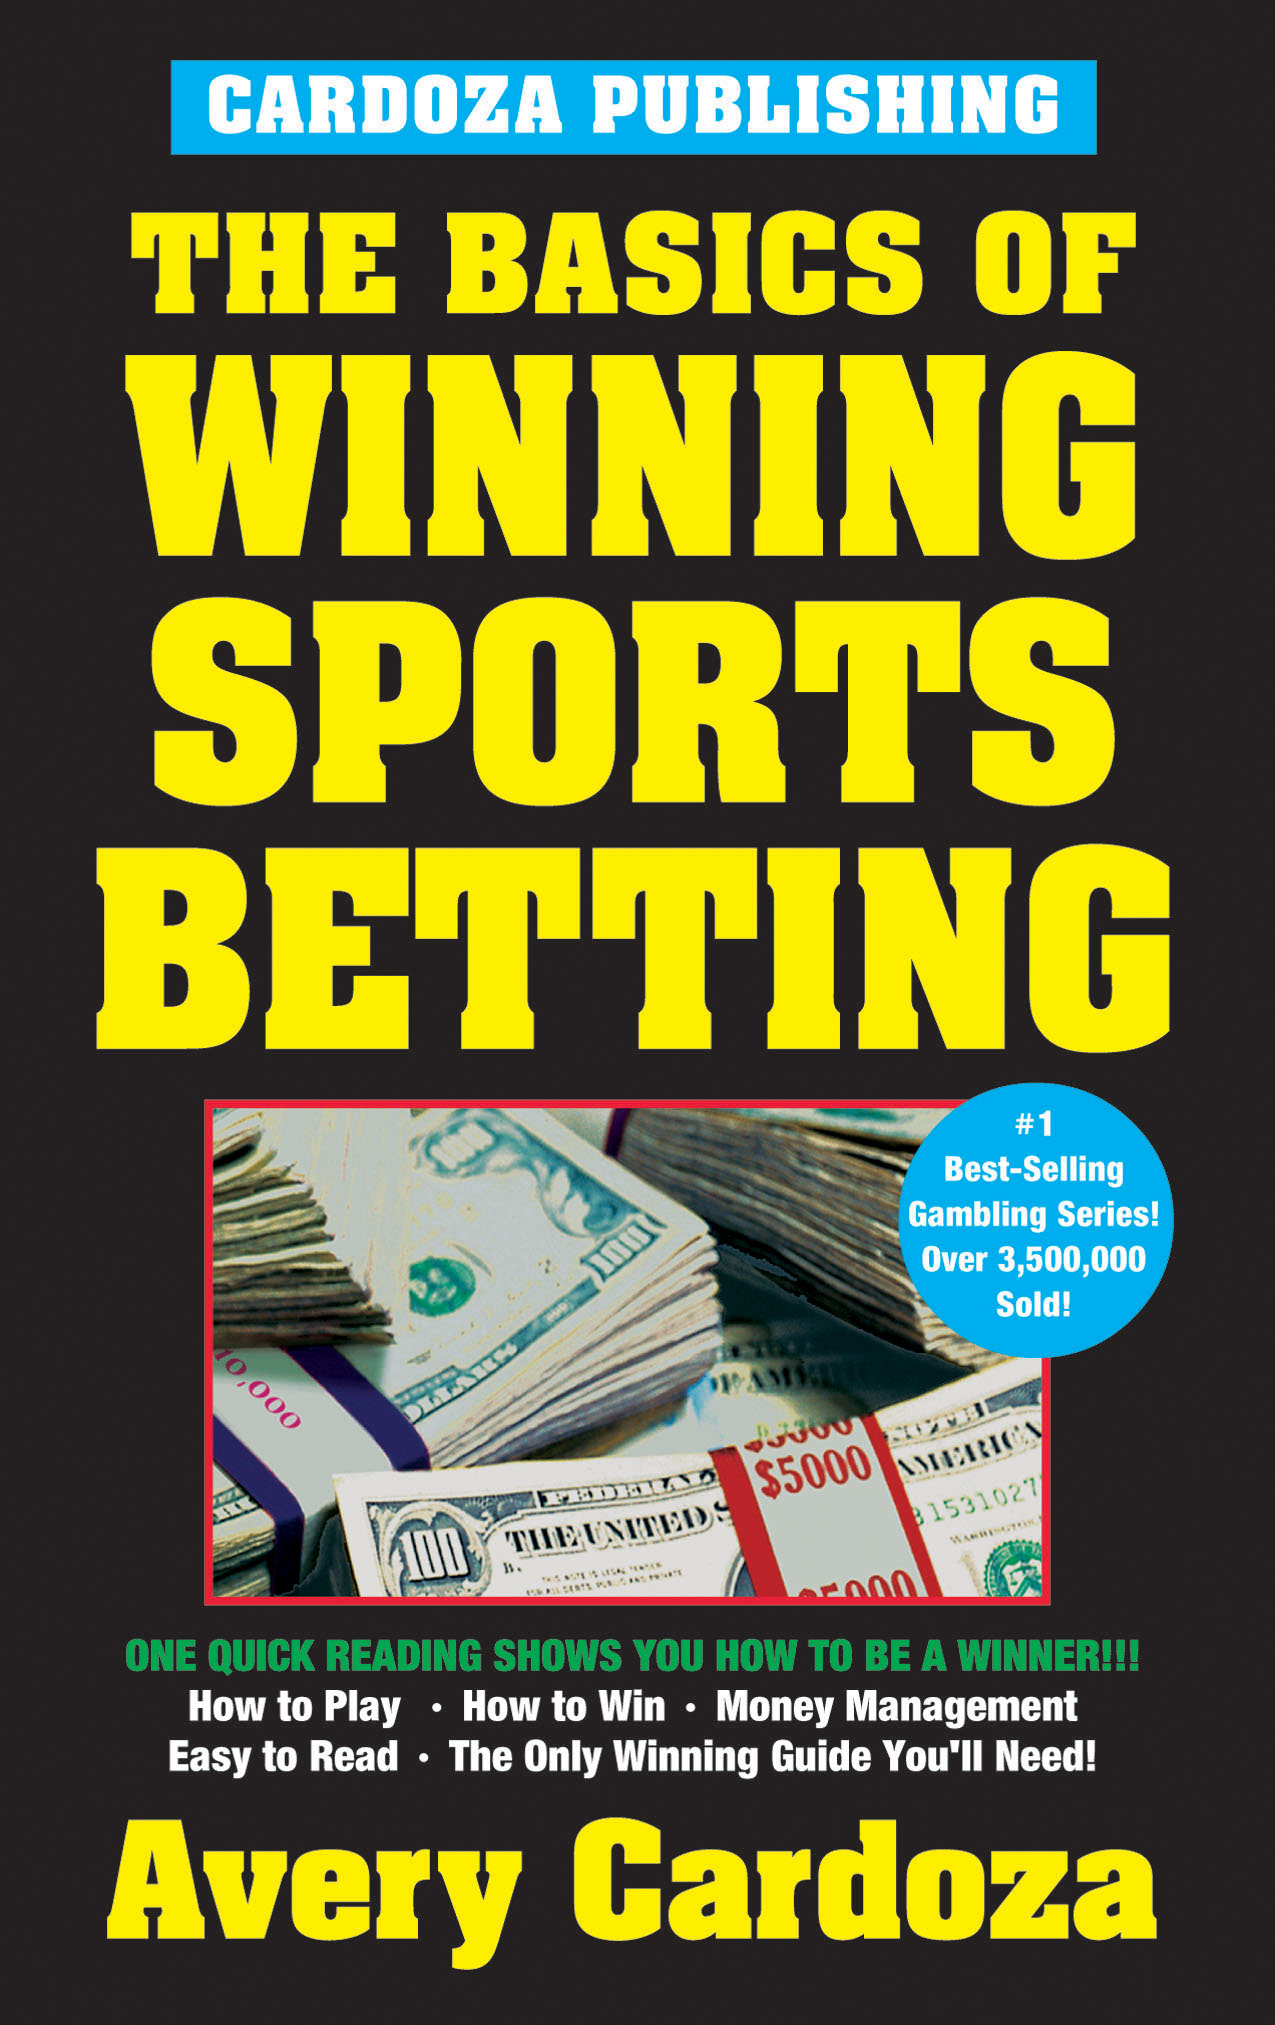 Book on sports betting soccer betting problems